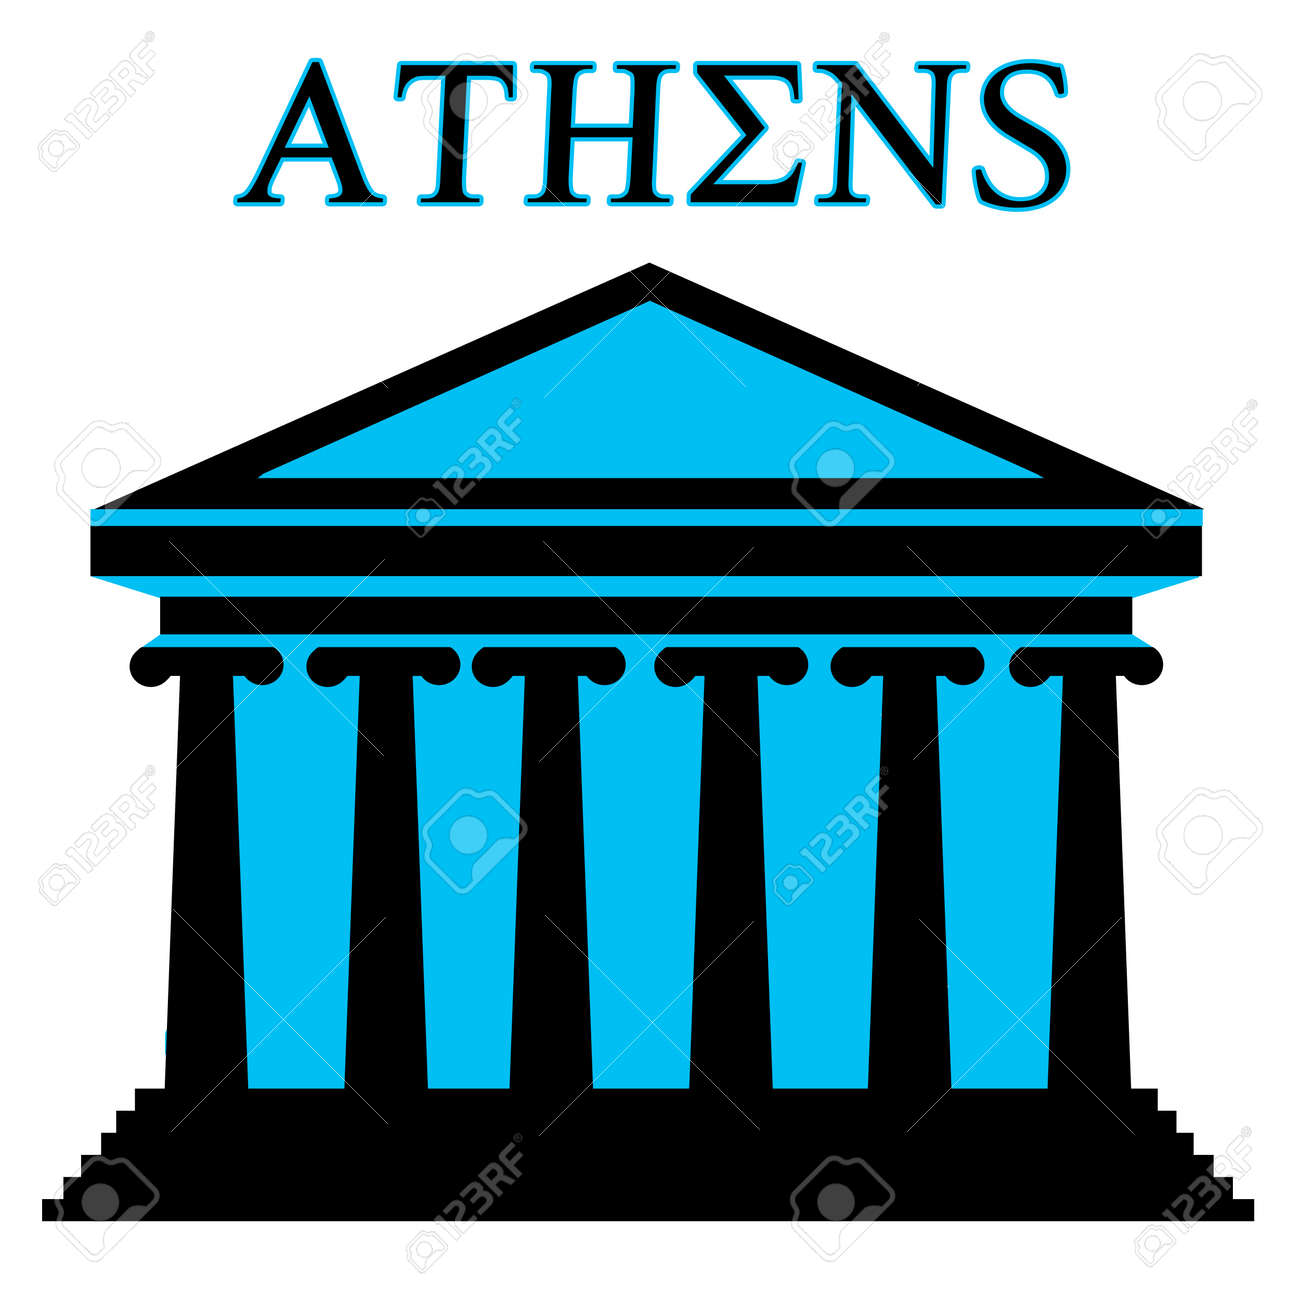 Athens symbol with Parthenon icon building on white background Stock Vector - 15924730